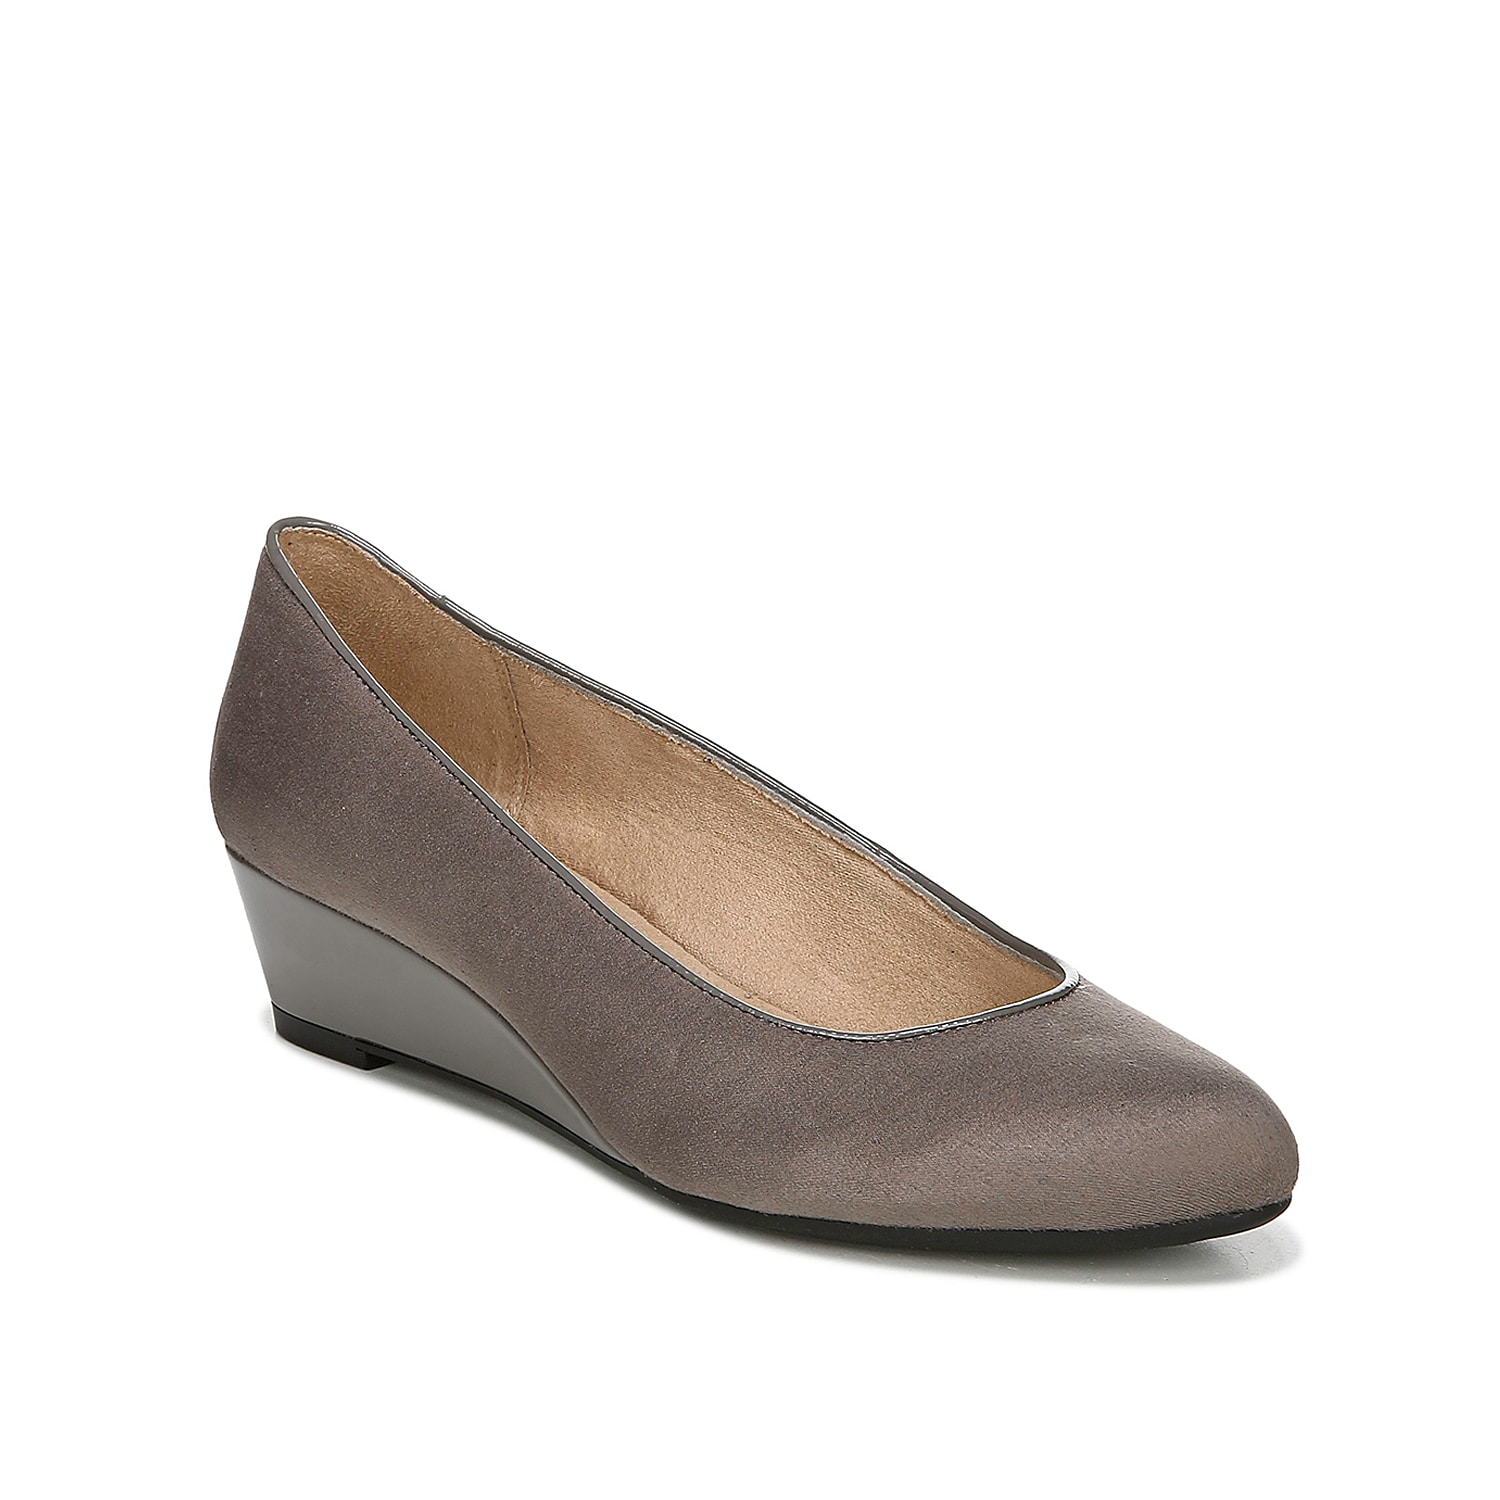 Get the comfort you need with the Hadley wedge pump from LifeStride. This pair features a premium Soft System® footbed with shock absorption and pressure distribution for support all day and night.